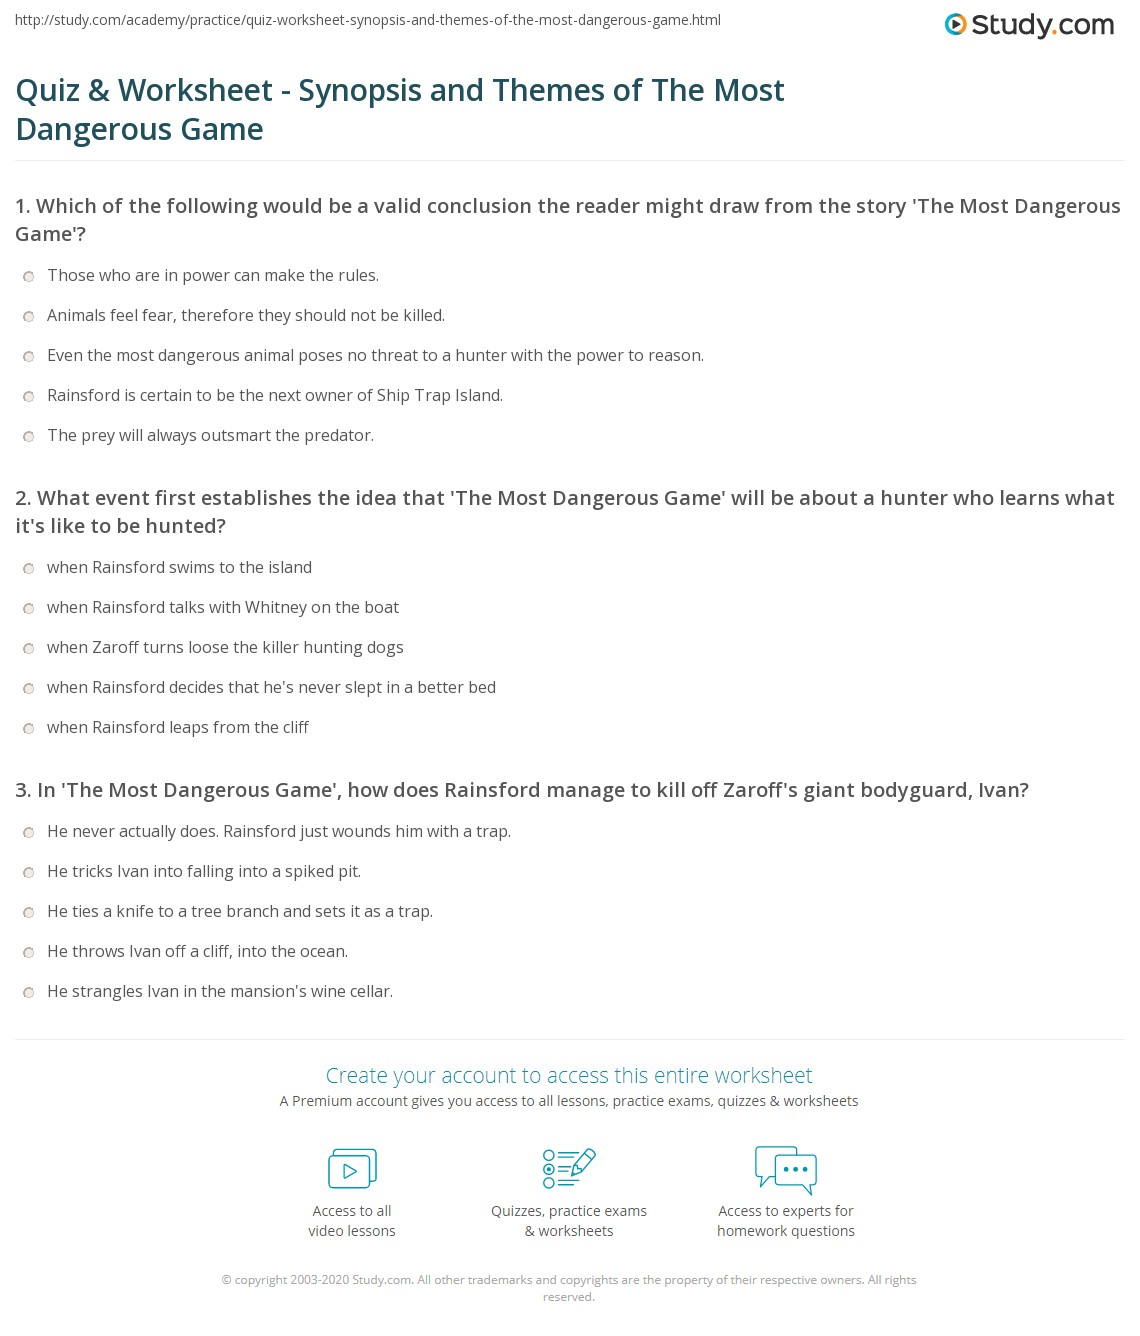 Worksheets The Most Dangerous Game Worksheets quiz worksheet synopsis and themes of the most dangerous game print summary worksheet